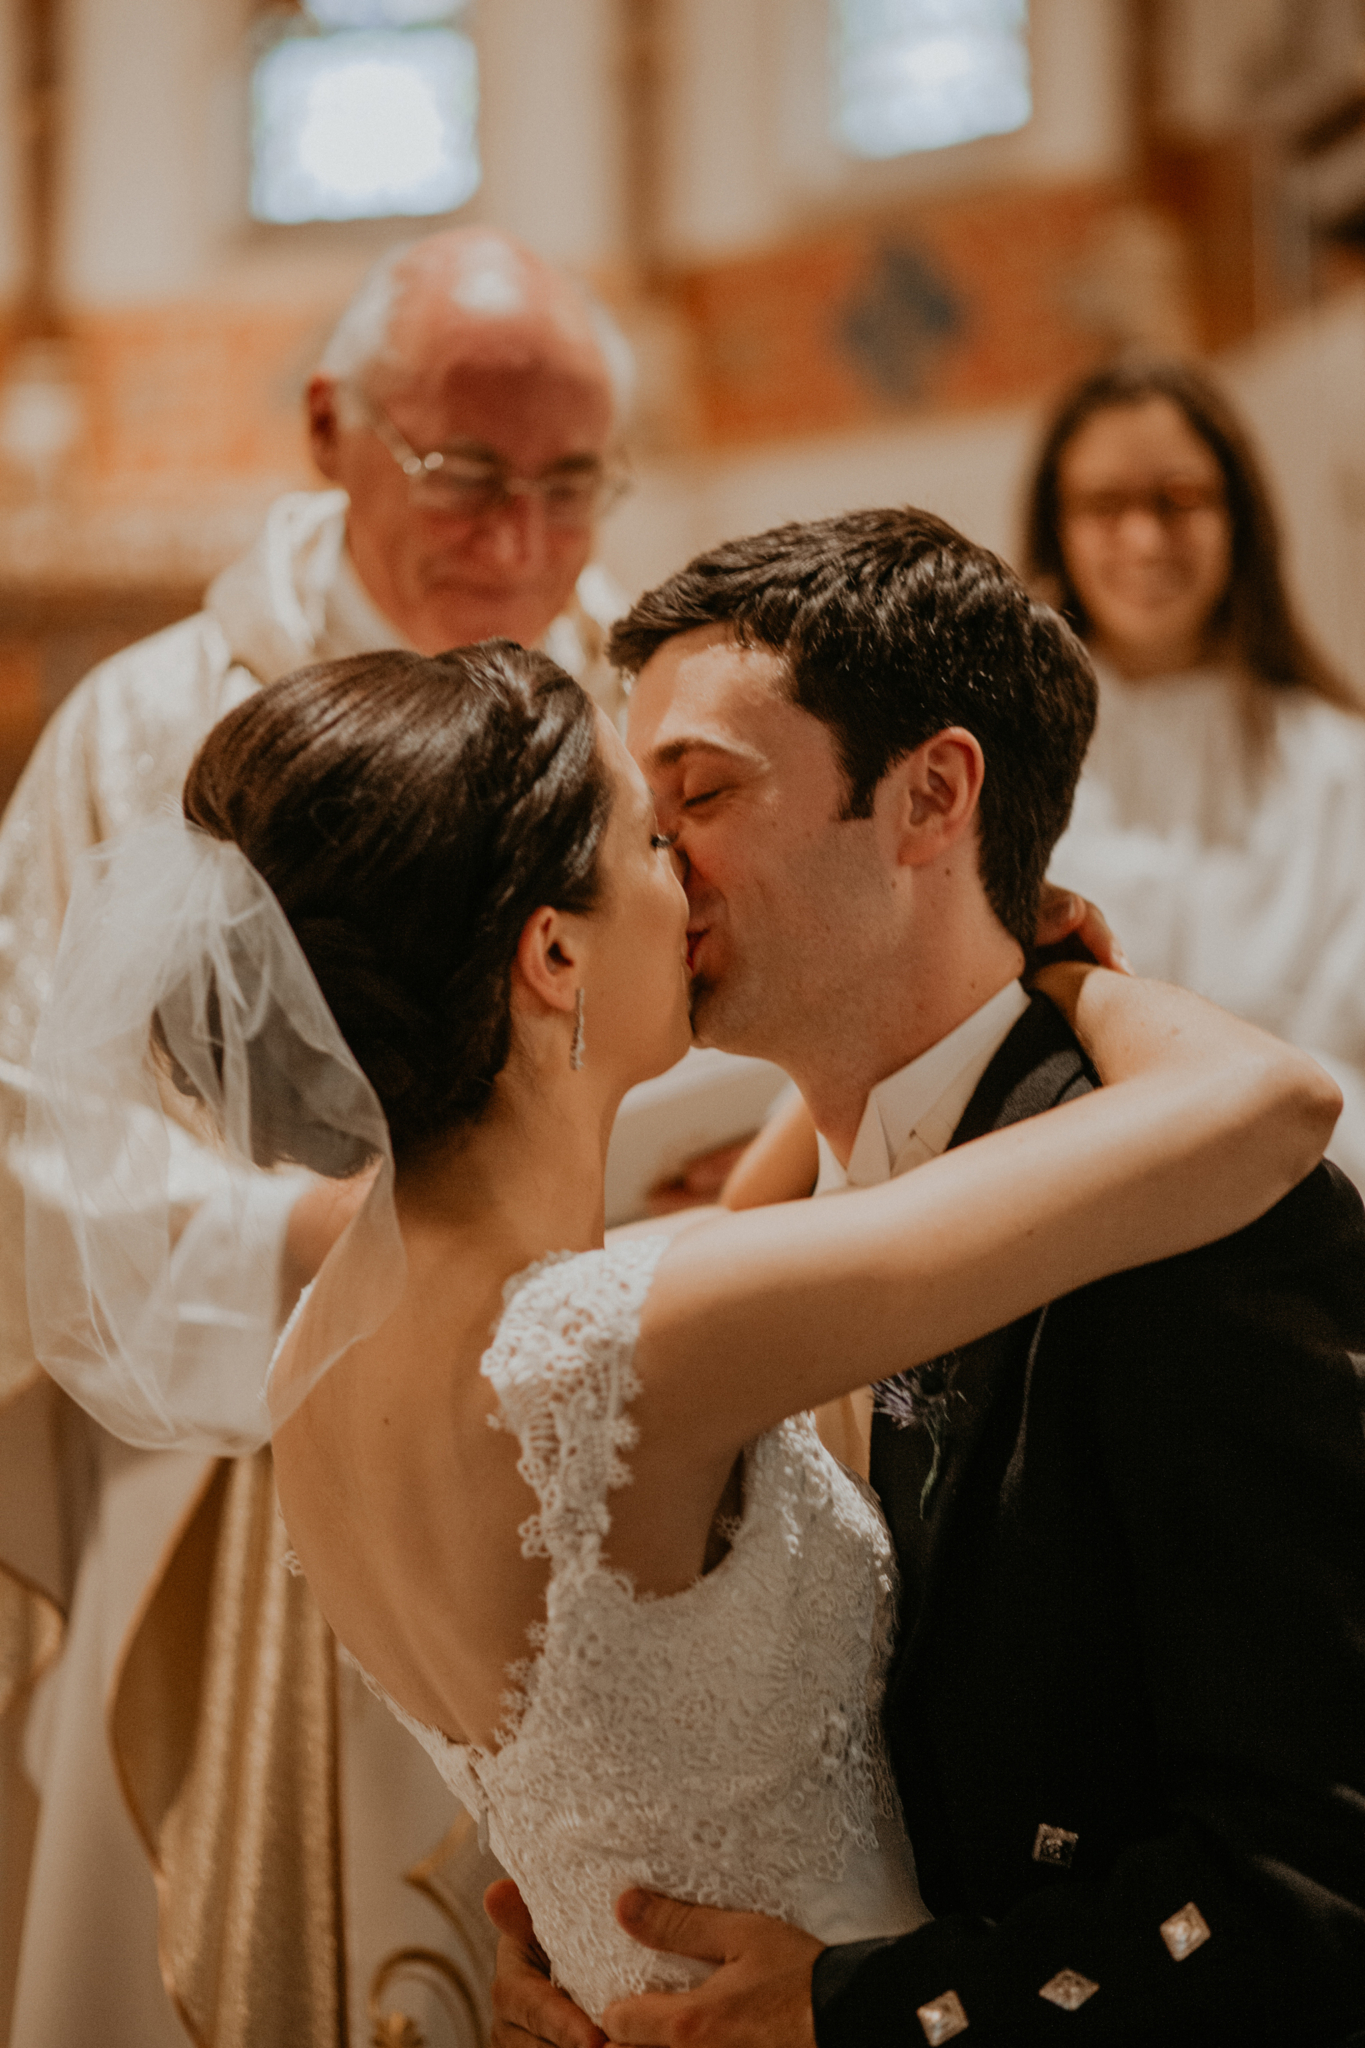 Bride and groom kissing in church romantic wedding photography